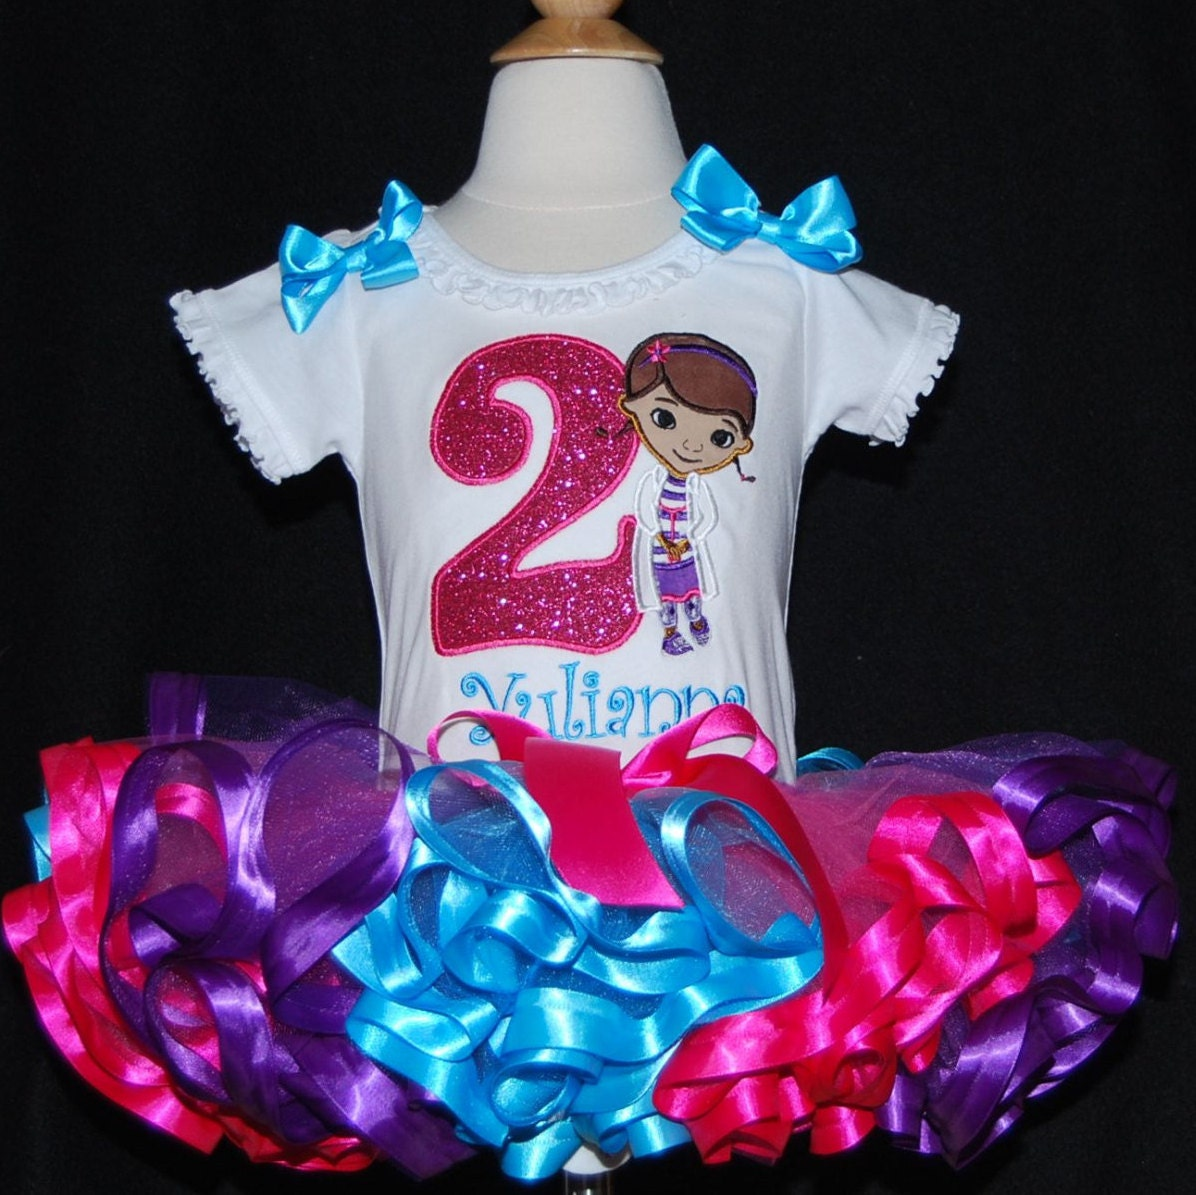 2nd birthday outfit girl, doc mcstuffins birthday tutu outfit, 2nd birthday girl outfit, toddler tutu,  tutu dress personalized ribbon trim